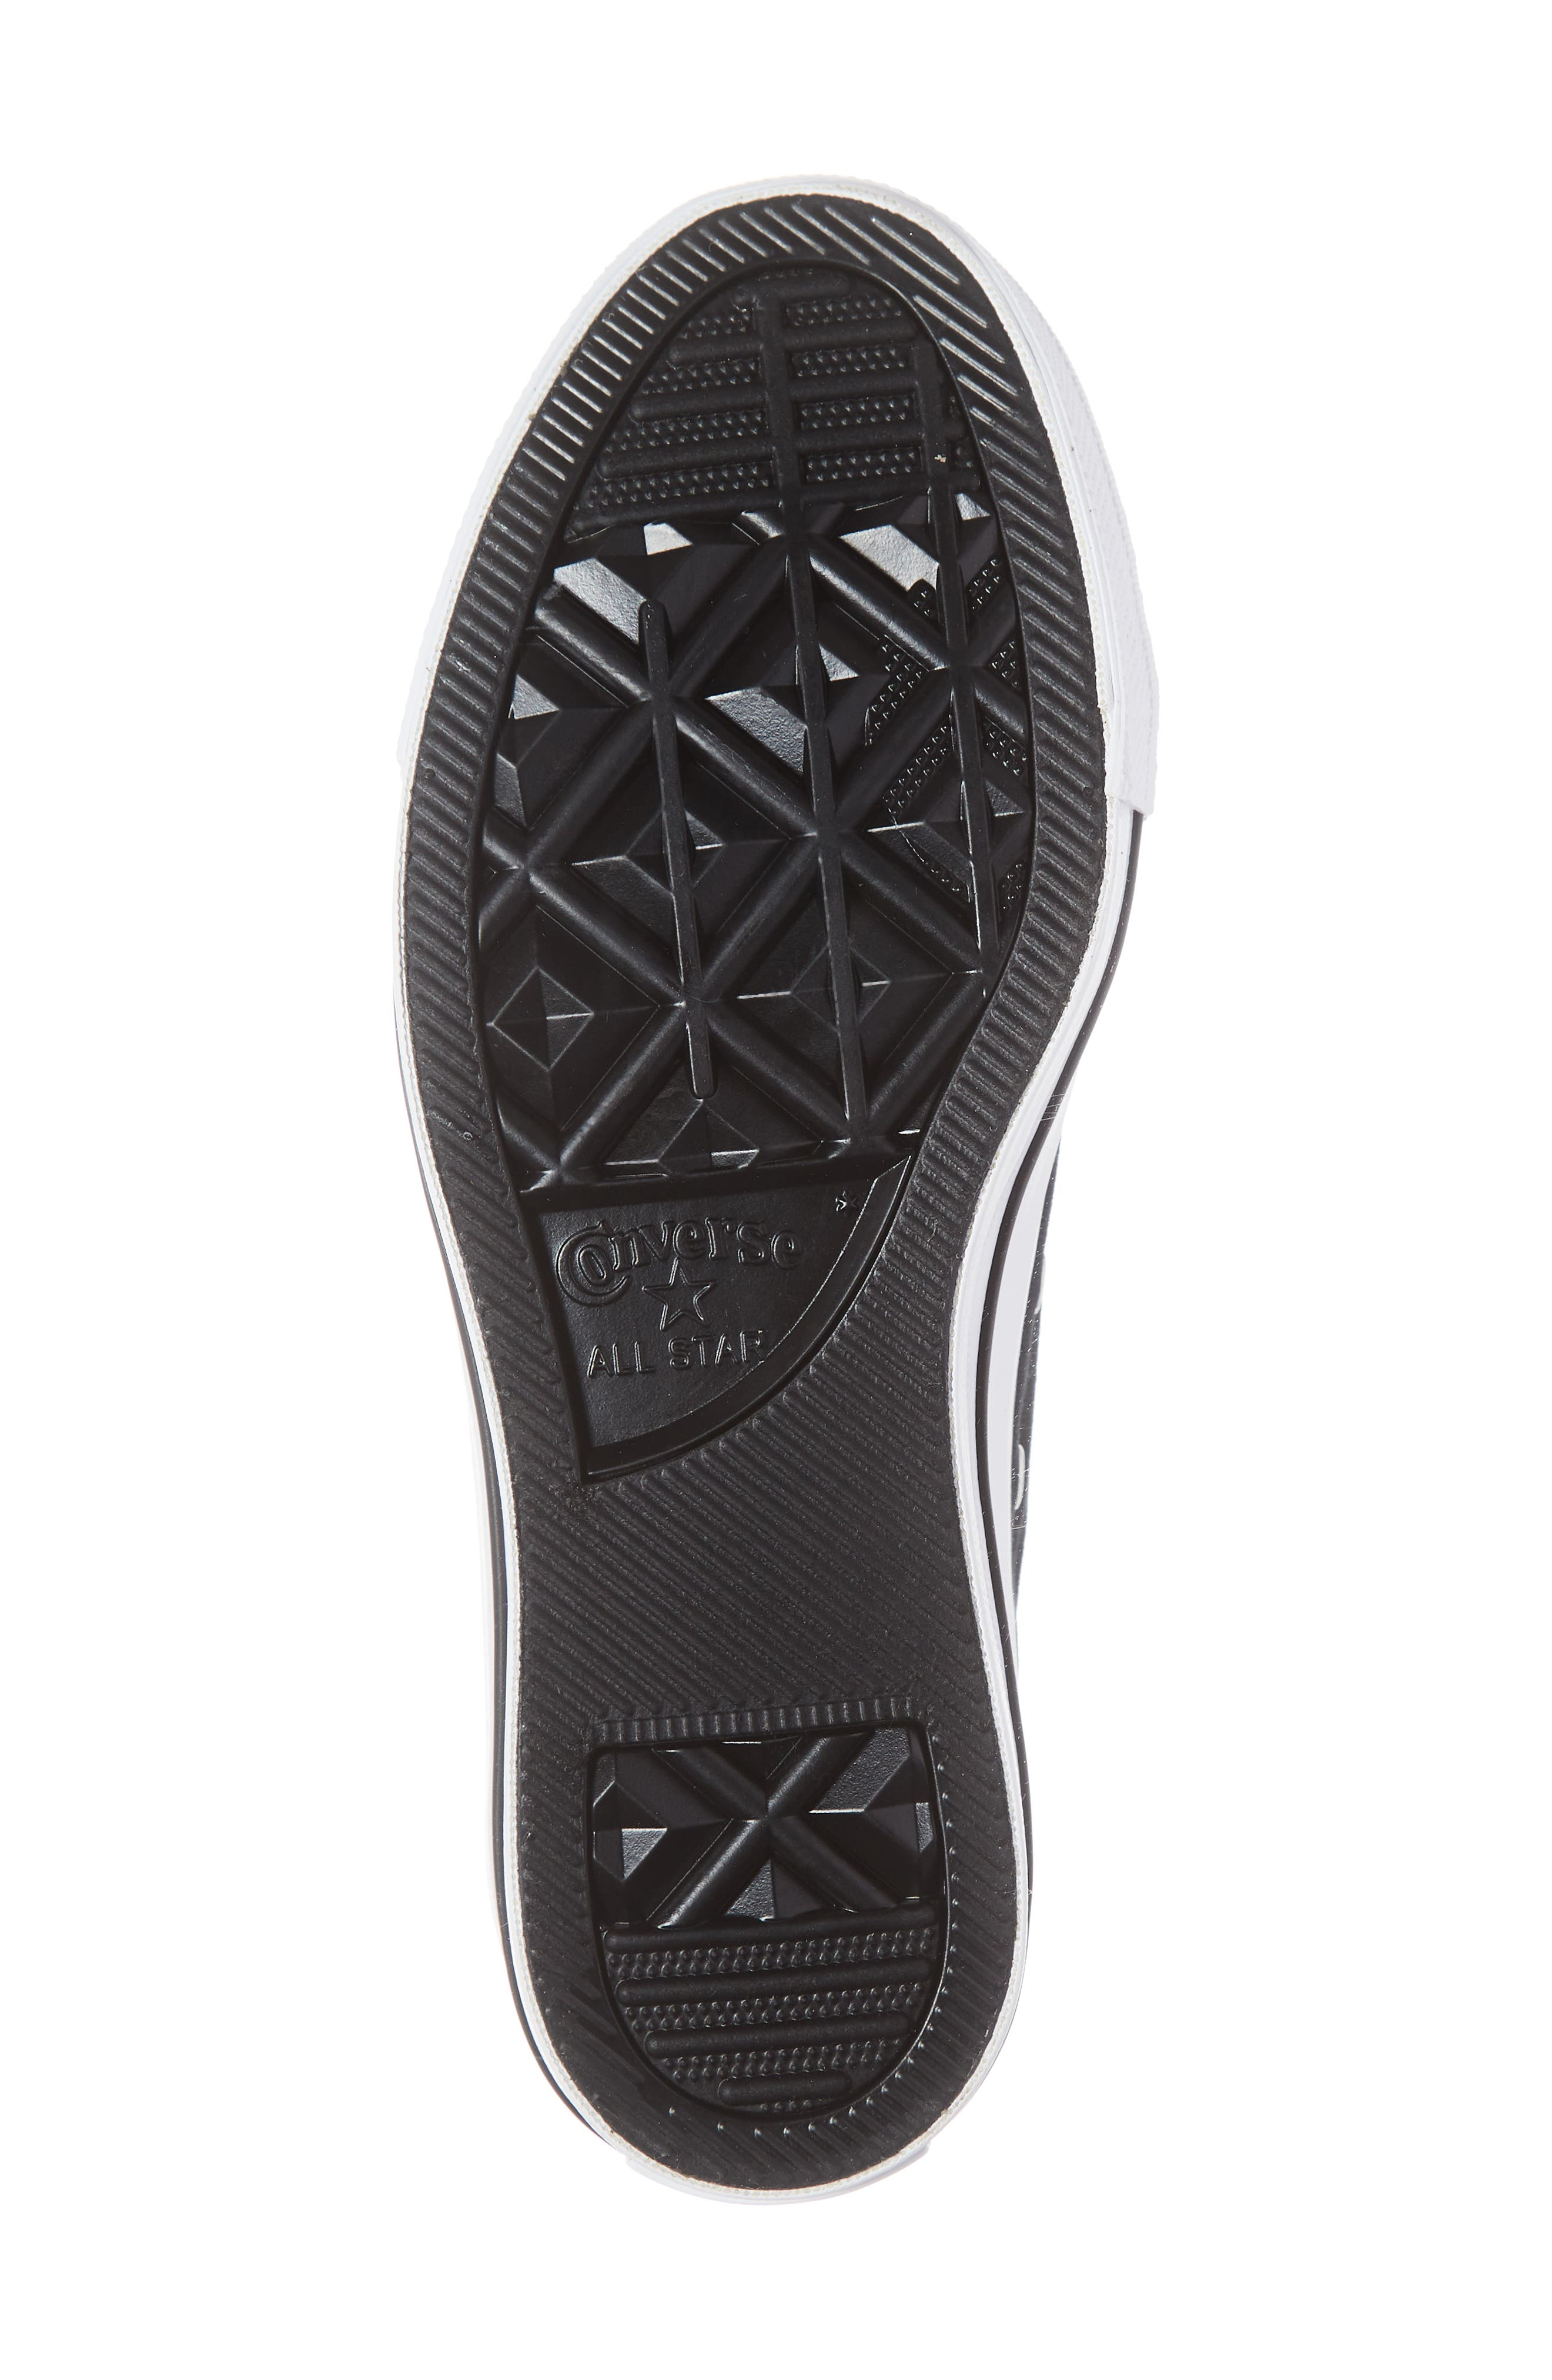 CONVERSE, Chuck Taylor<sup>®</sup> All Star<sup>®</sup> Low Top Sneaker, Alternate thumbnail 6, color, BLACK/ WHITE/ BLACK